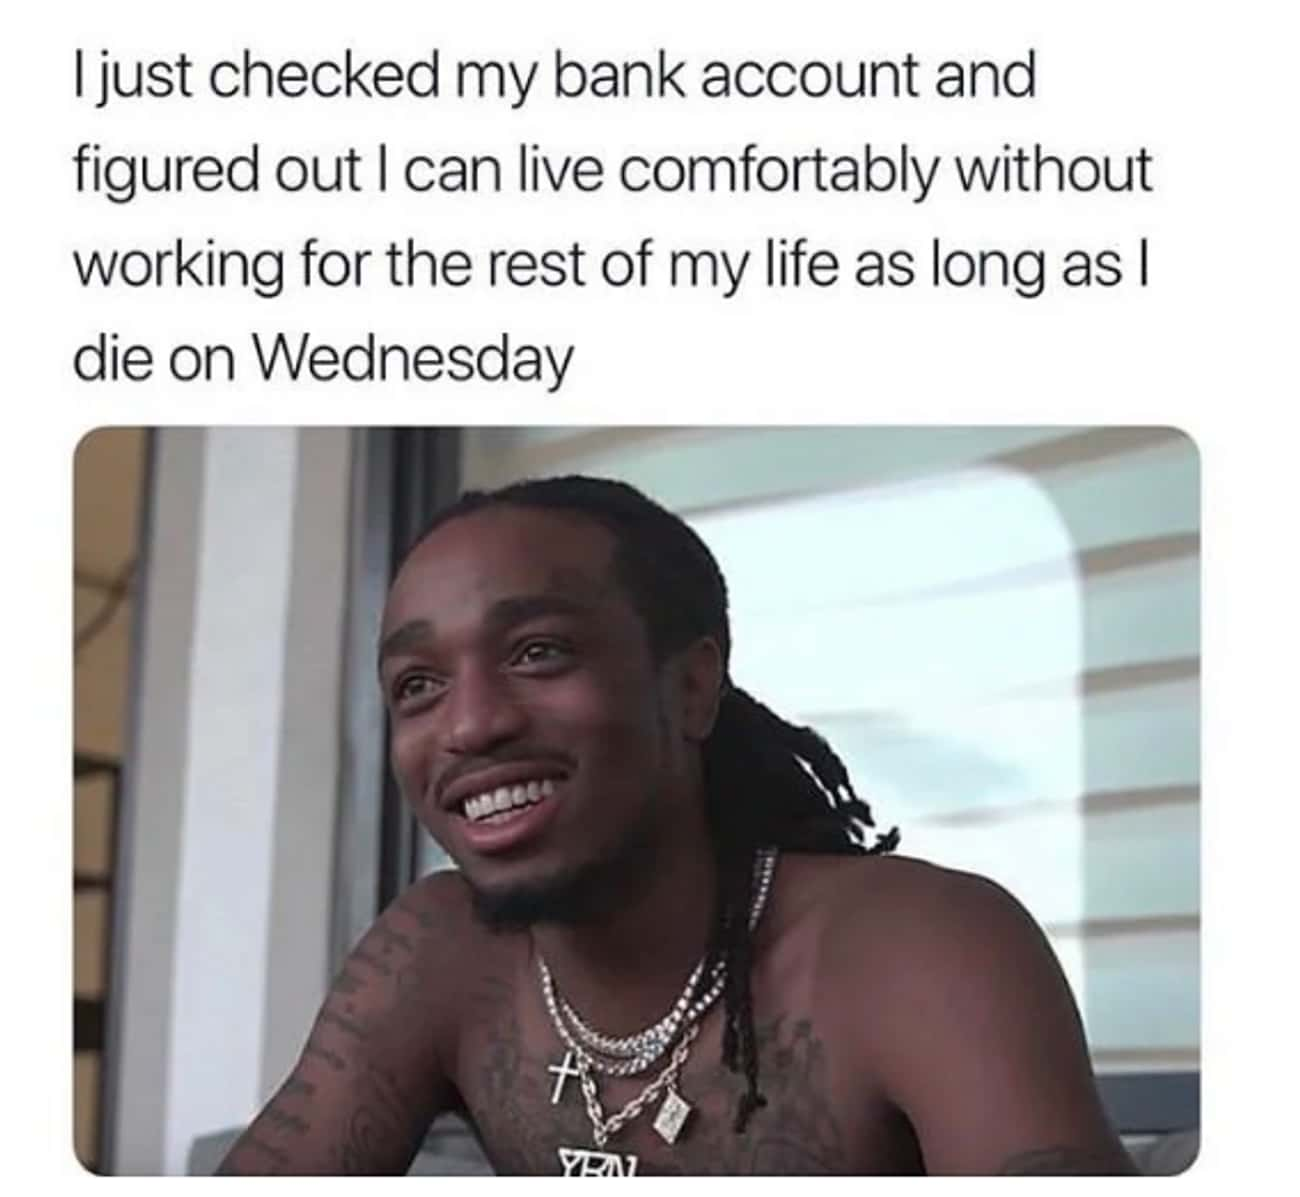 Midweek Blues is listed (or ranked) 2 on the list The 22 Best Funny But Sad Memes